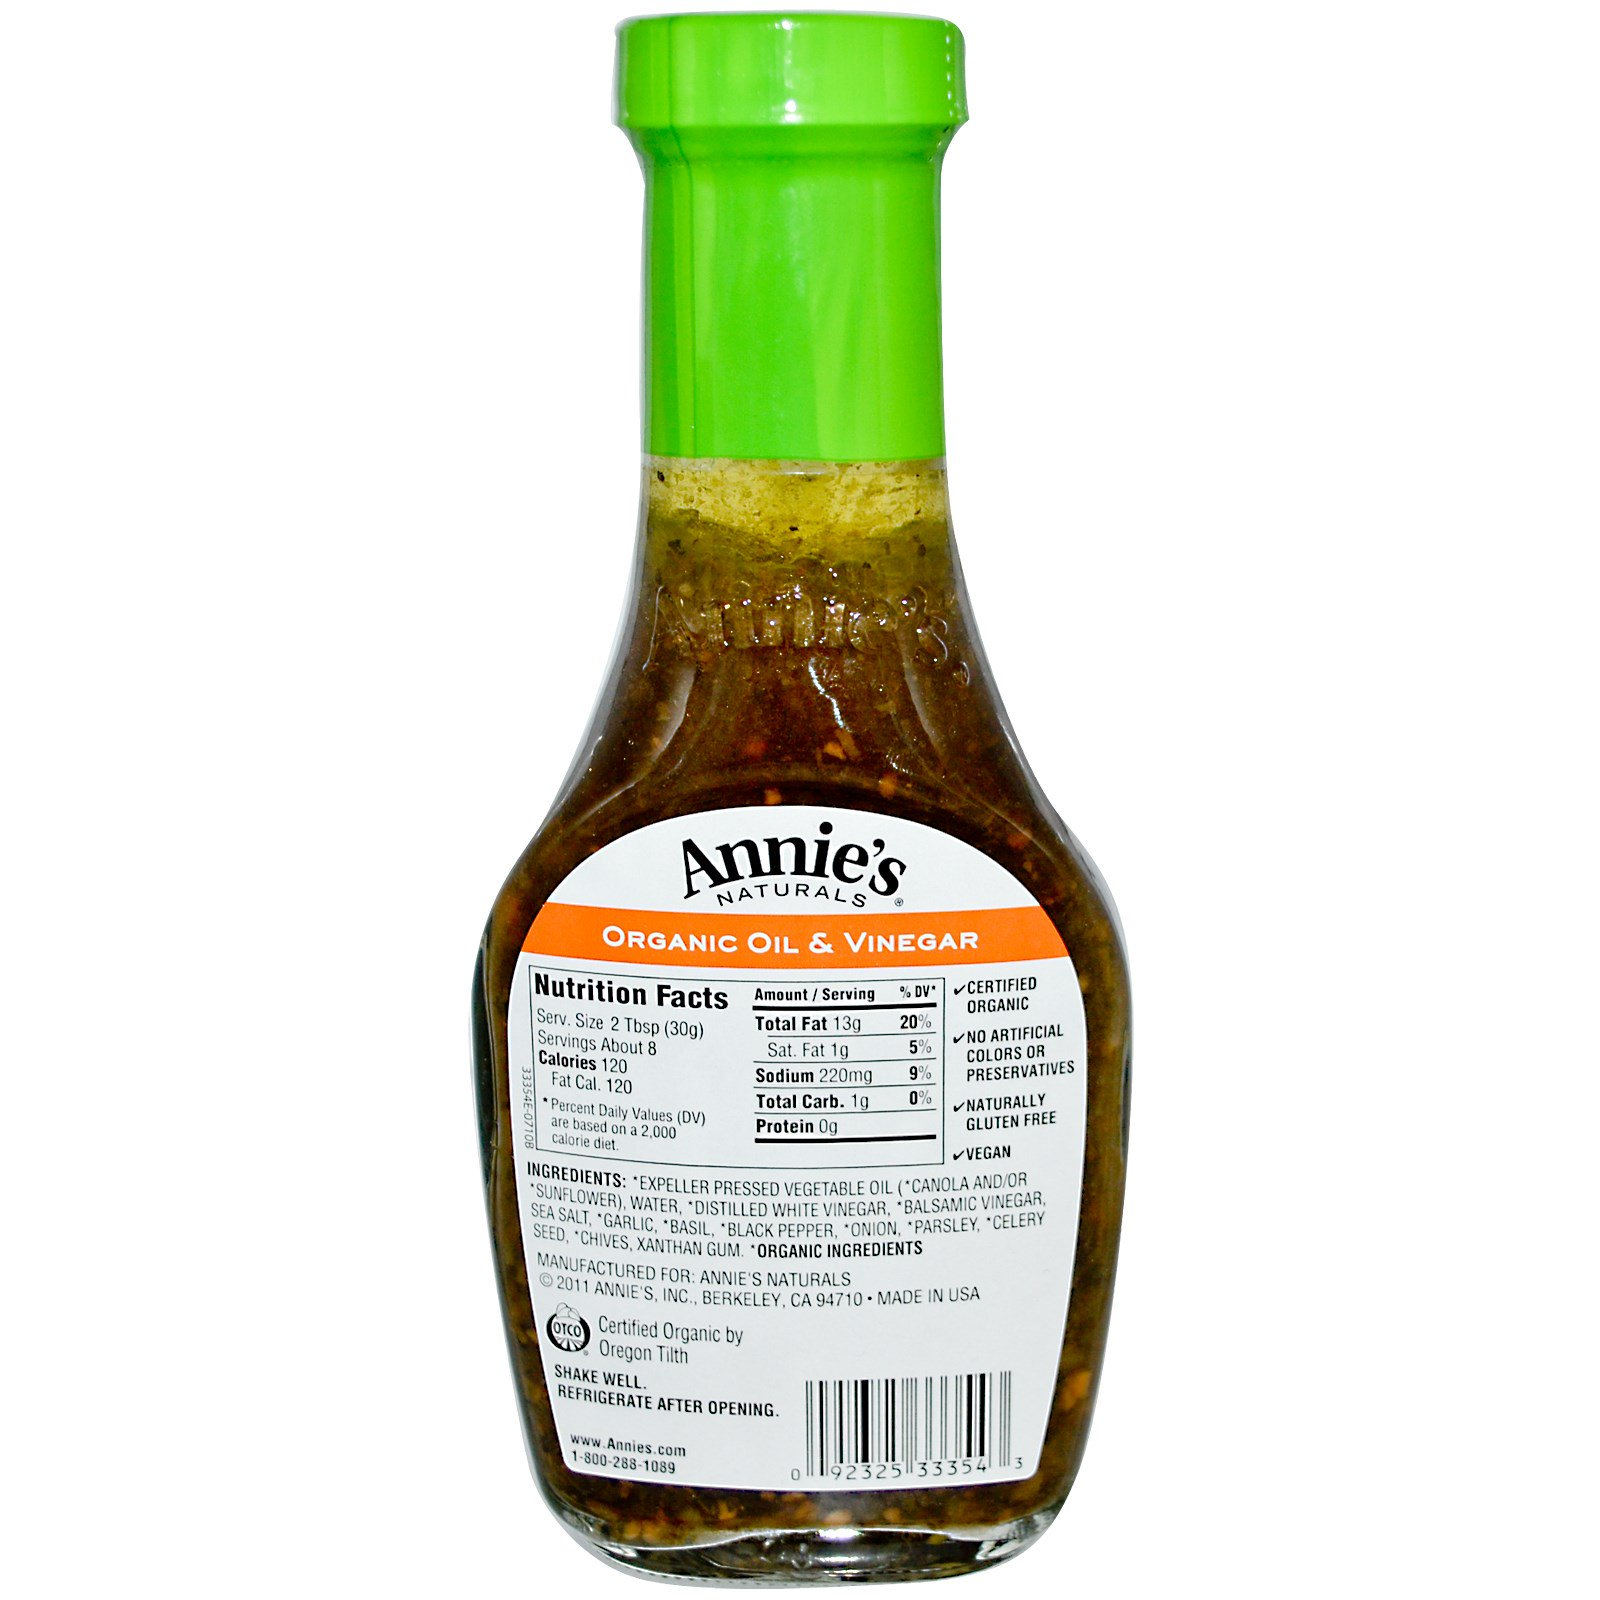 Oil And Vinegar Annie 39s Naturals Organic Oil And Vinegar With Balsamic